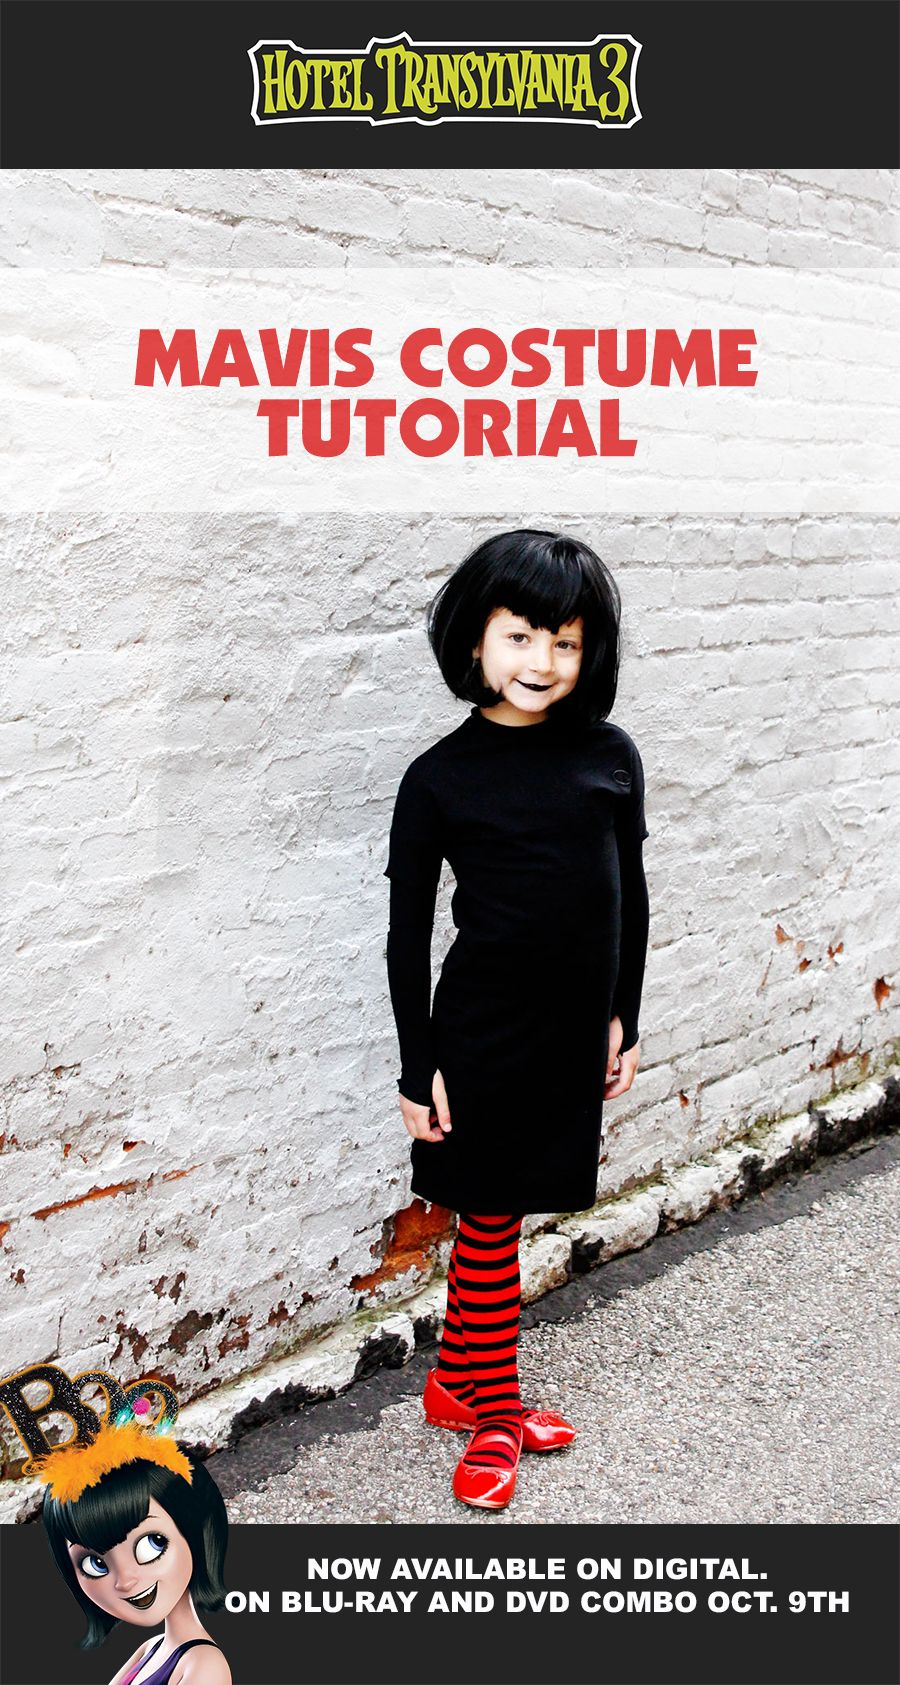 69f0dccd637 Hotel Transylvania 3 s Mavis is the perfect DIY kids costume for Halloween!  With an easy sewing tutorial from  seekatesew1